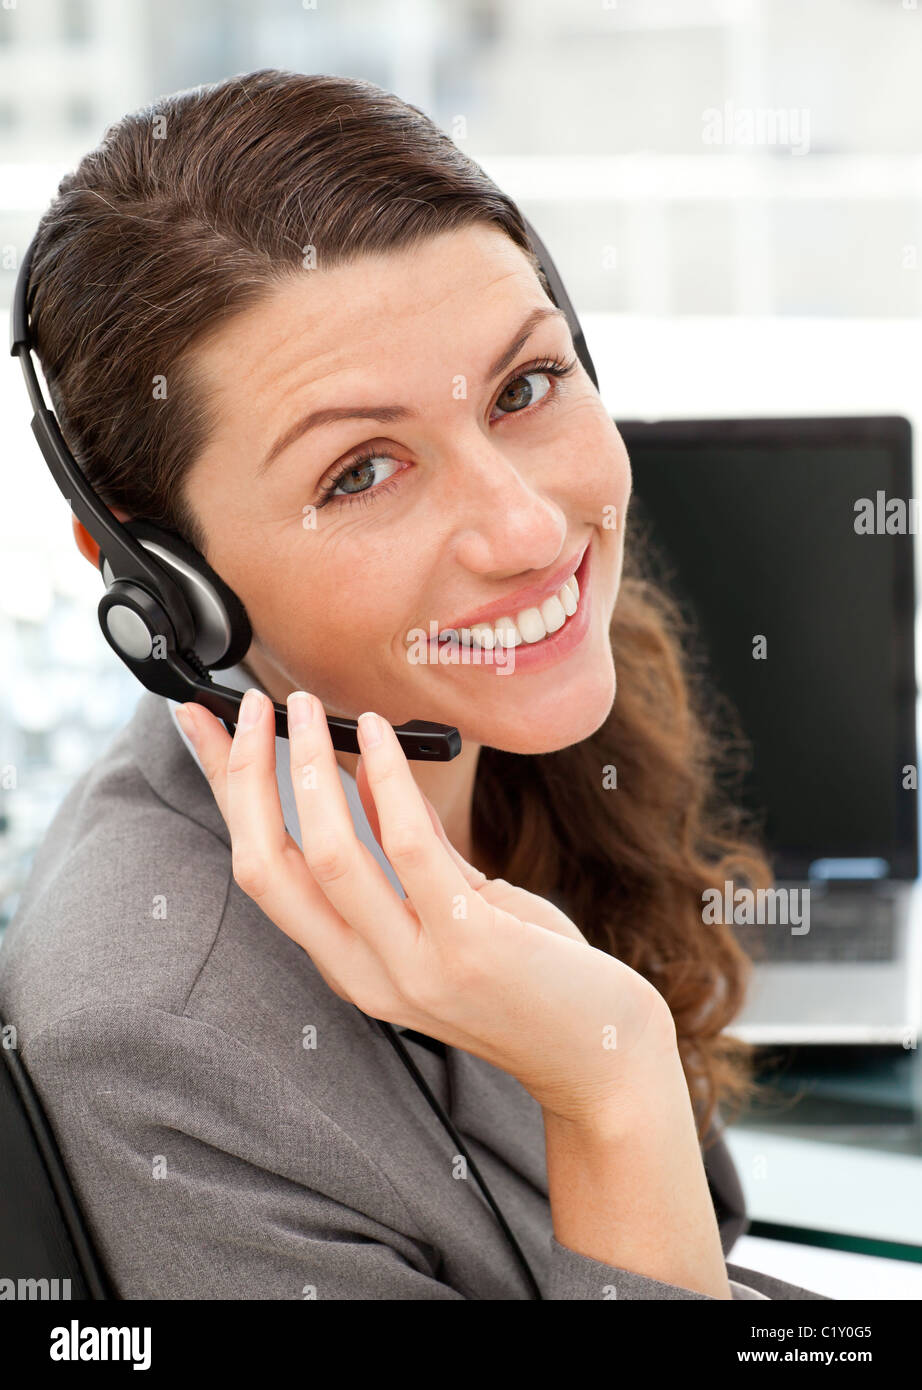 Pretty female representative on the phone with earpiece on Stock Photo